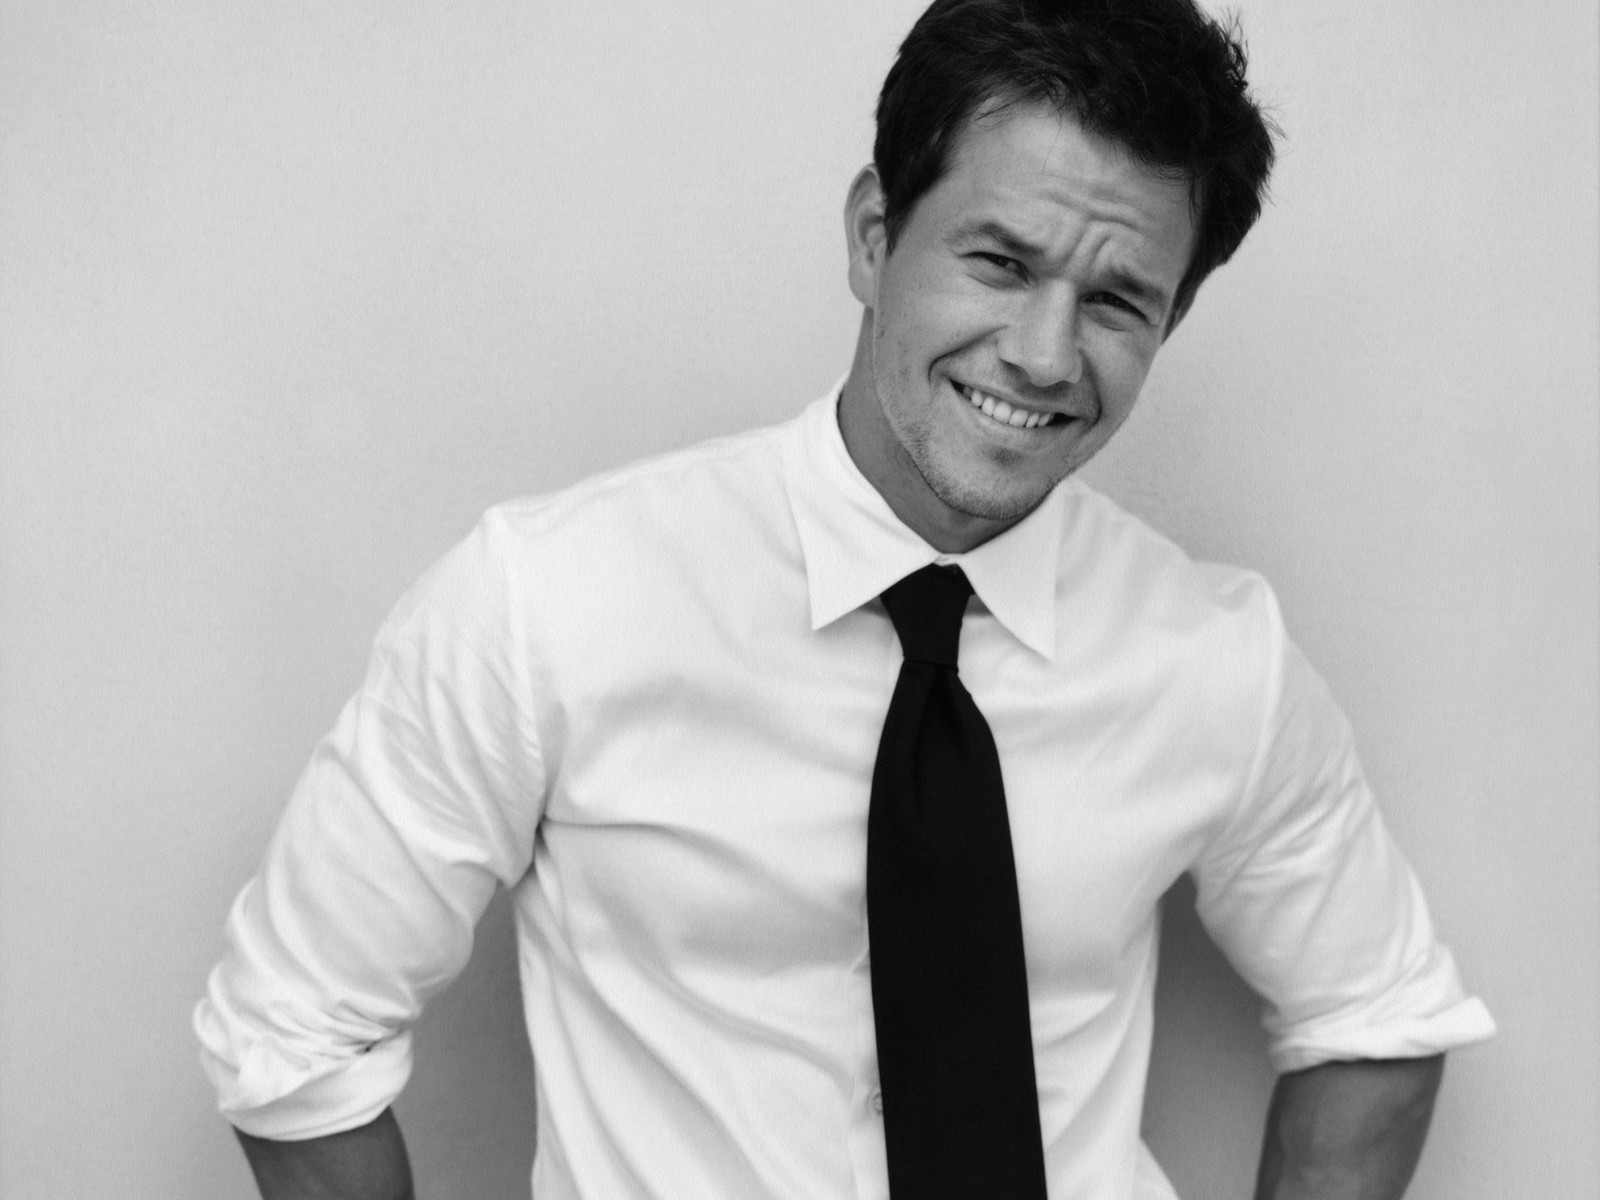 Mark Wahlberg for MARK WAHLBERG